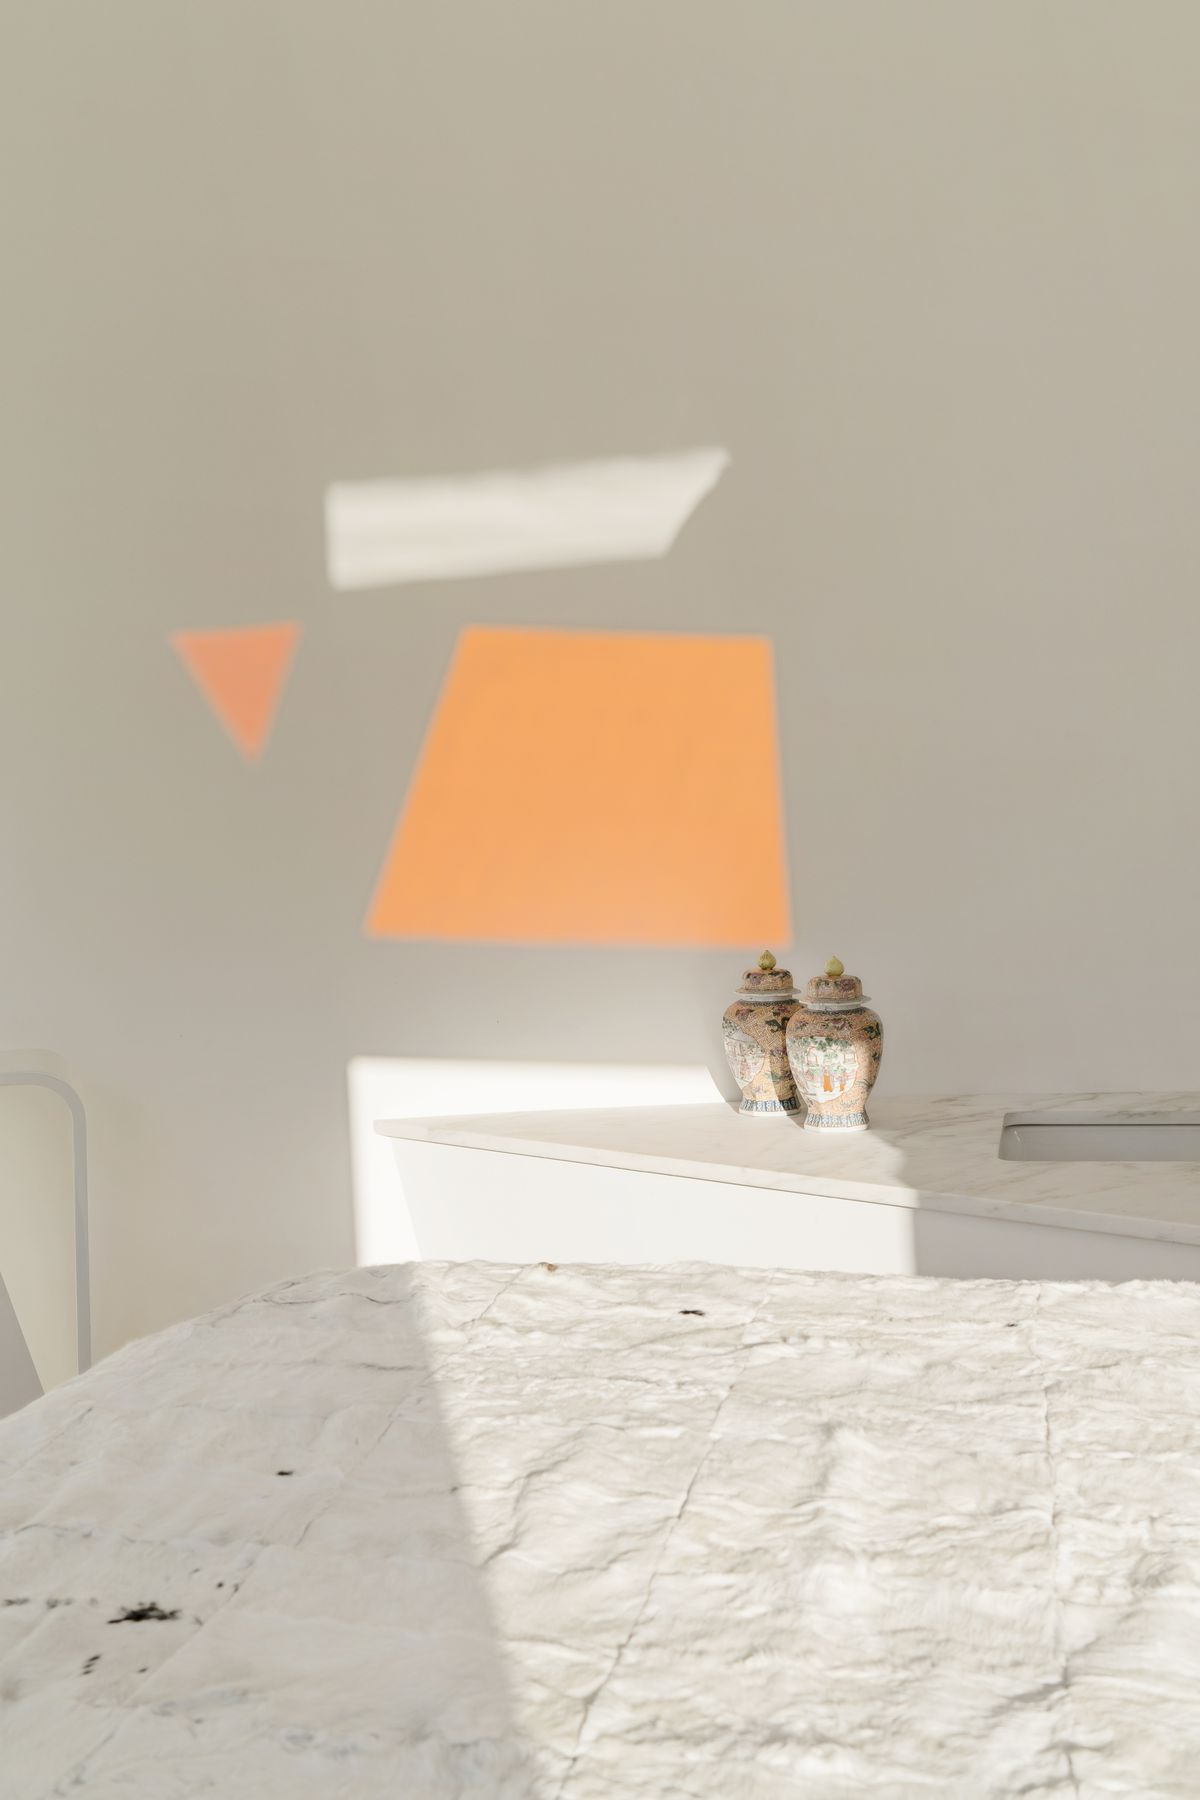 A white bed is next to a wide table and white walls. Warm orange reflection is on the wall.